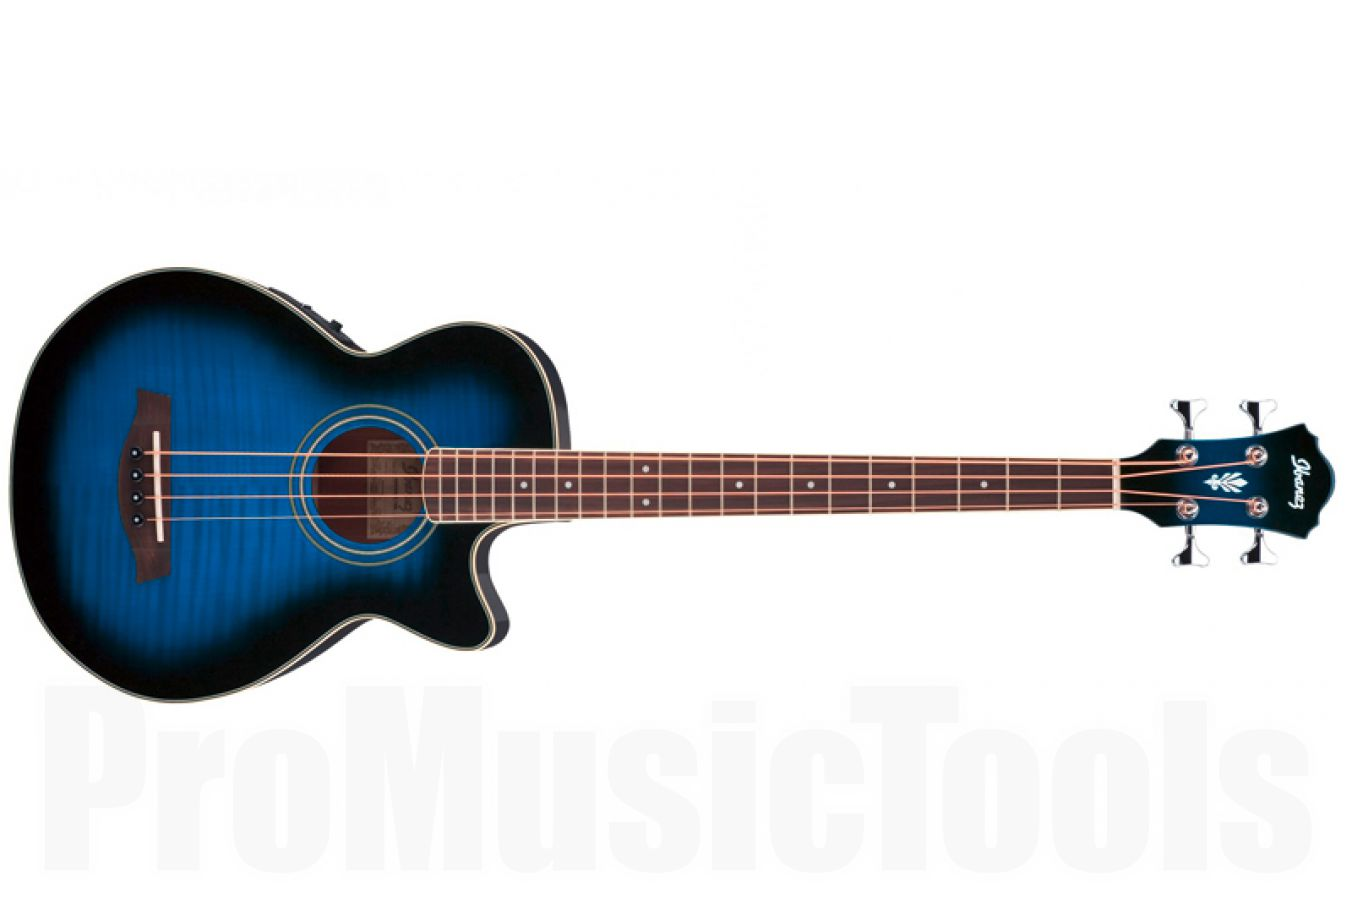 Ibanez AEGB20E TBS - Transparent Blue Sunburst - demo